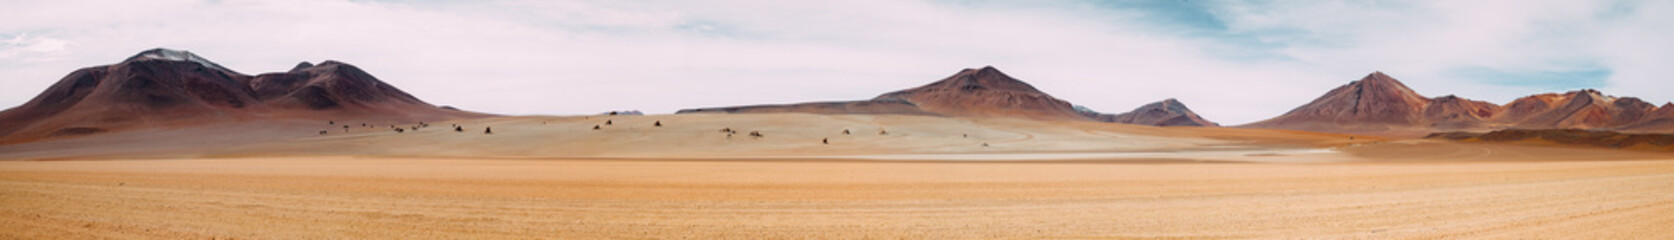 Foto op Aluminium Zandwoestijn The vast expanse of nothingness - Atacama Desert - Bolivia